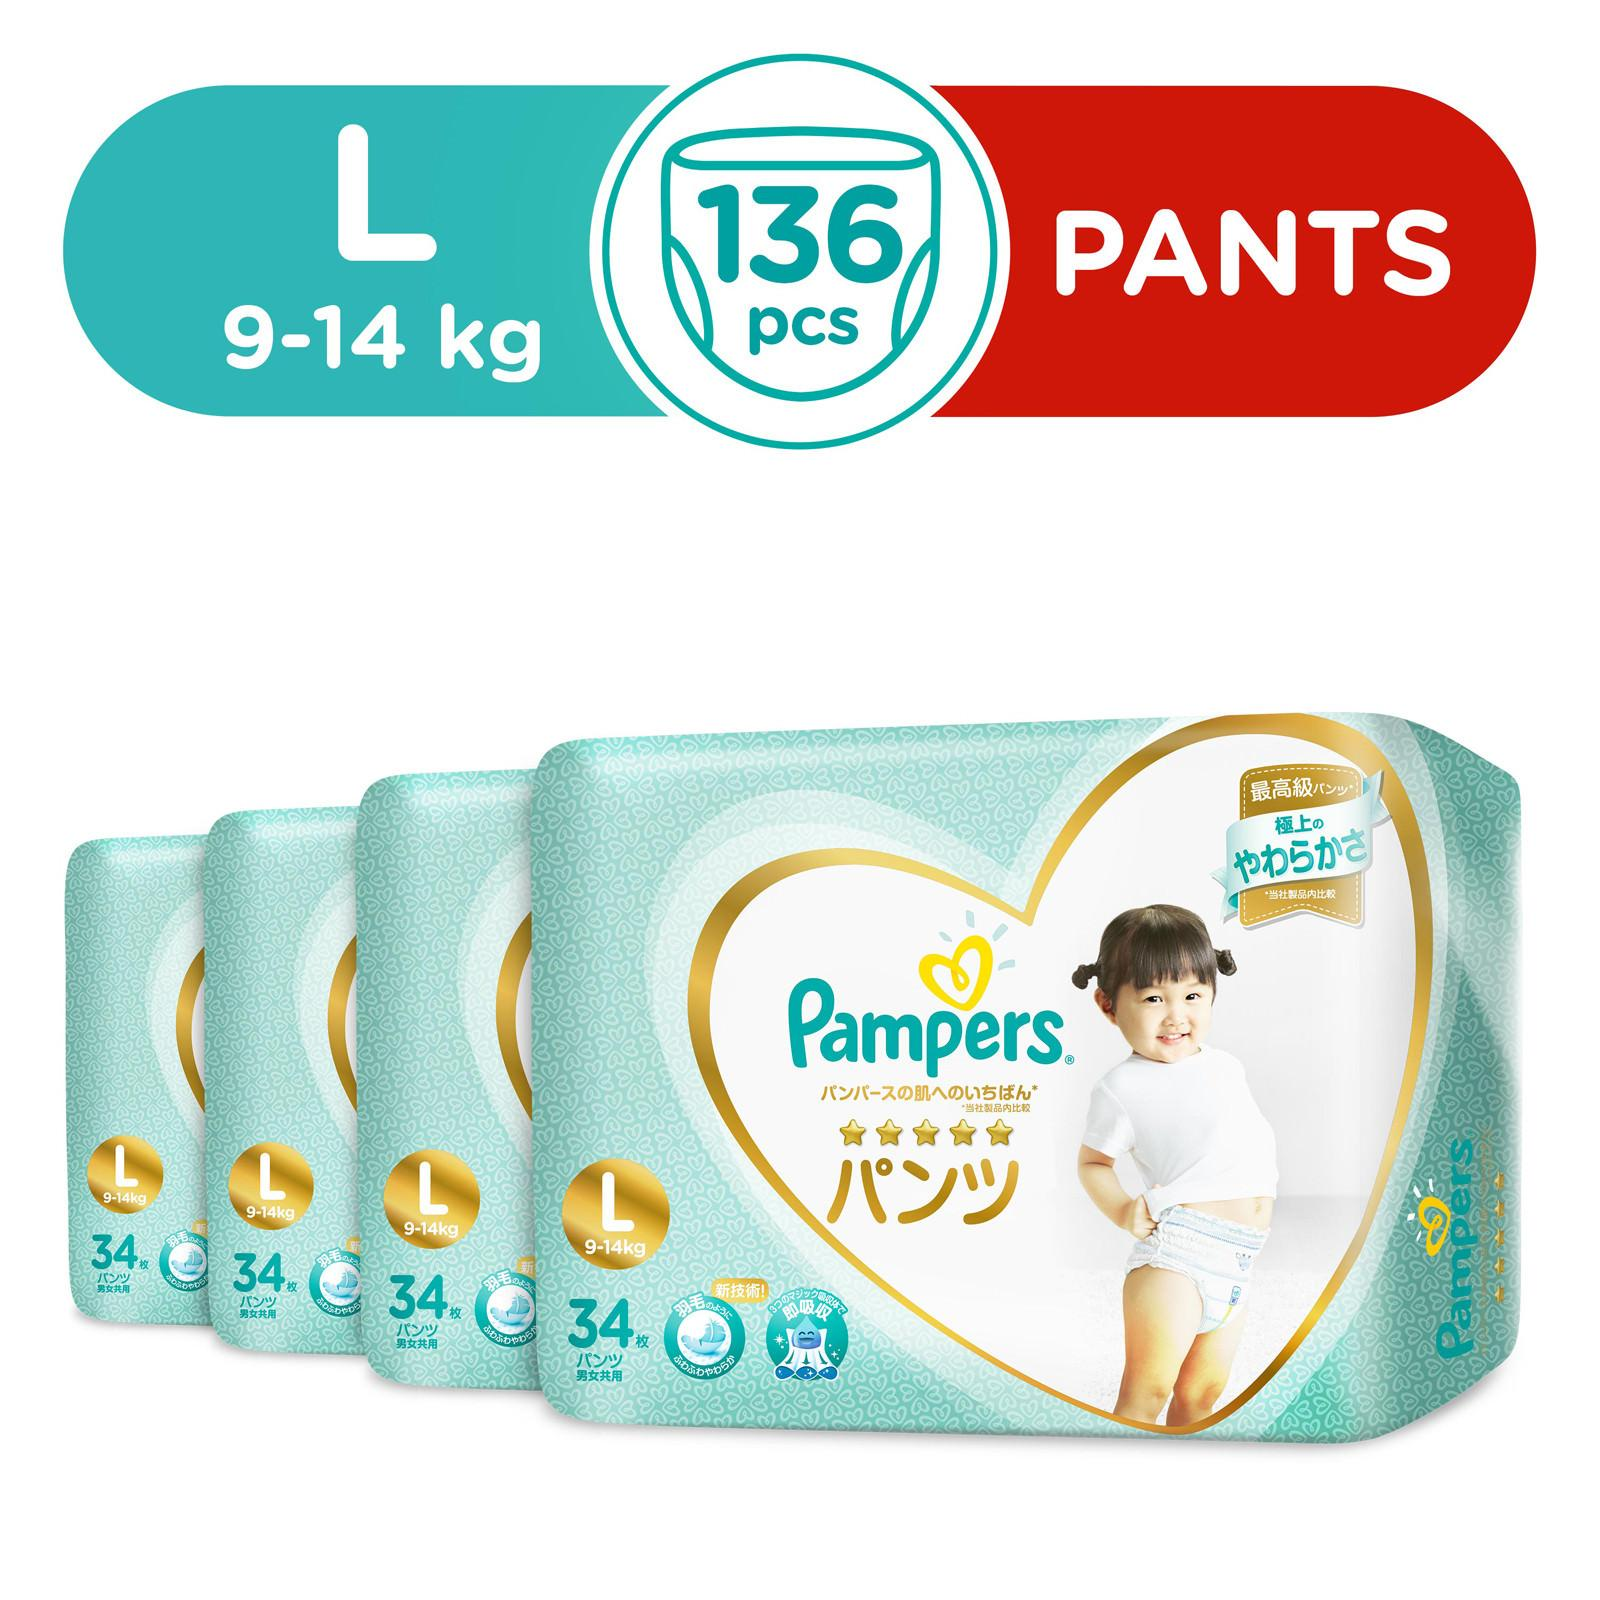 Pampers Premium Care Pants L 34 X 4 Packs 136 Pcs – Large Diapers (9-14kg).